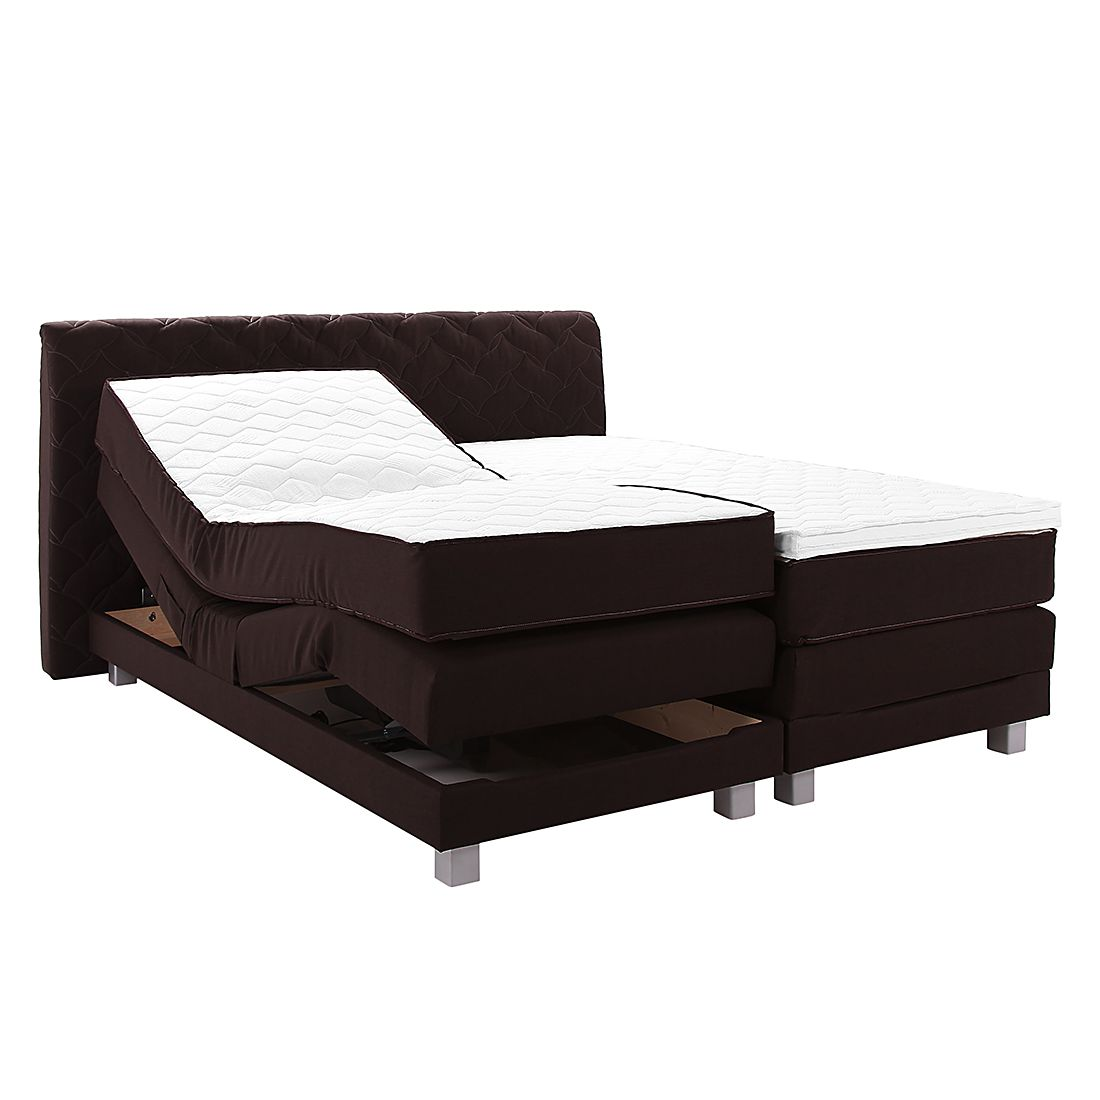 boxspringbett yannis mit elektromotor inklusive topper. Black Bedroom Furniture Sets. Home Design Ideas